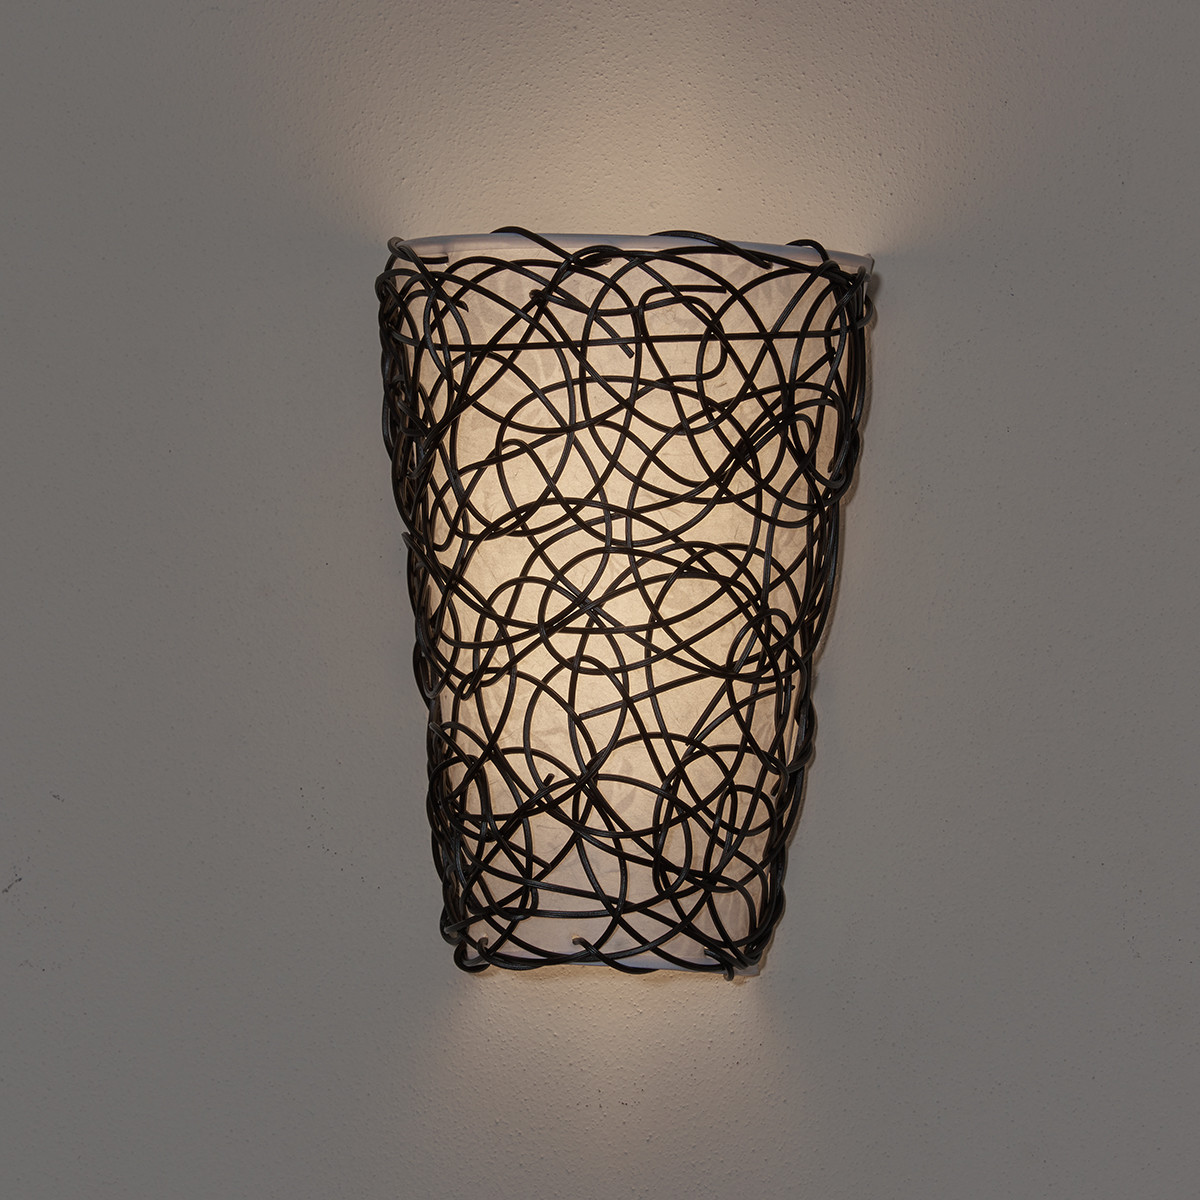 Image of: Decorative Indoor Wall Sconce